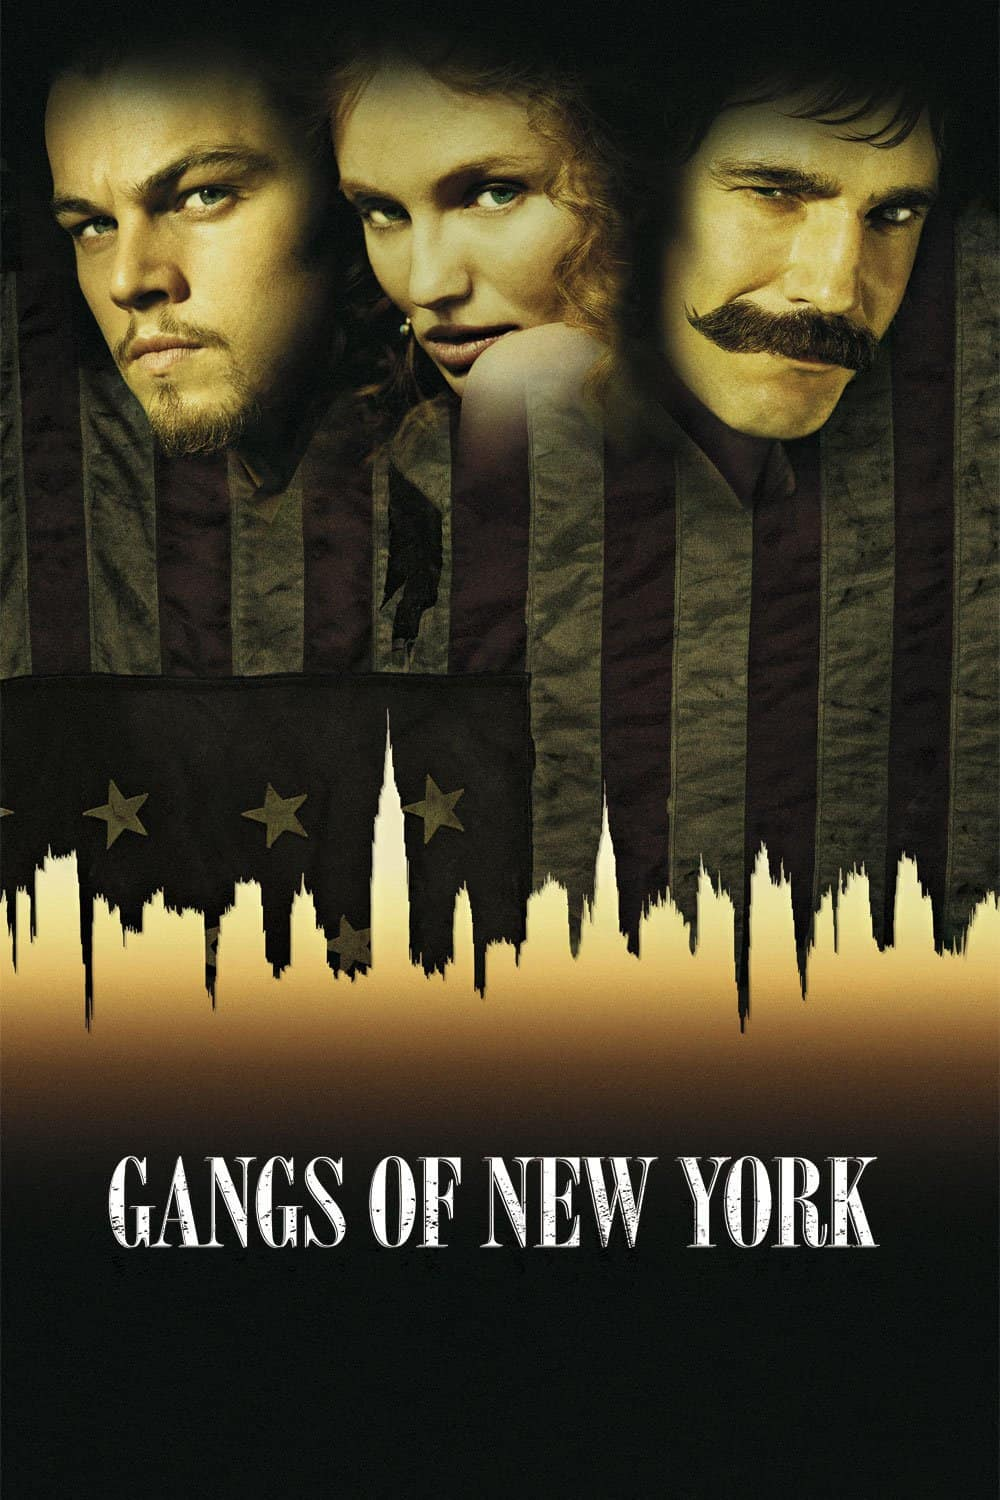 Gangs of New York, 2002